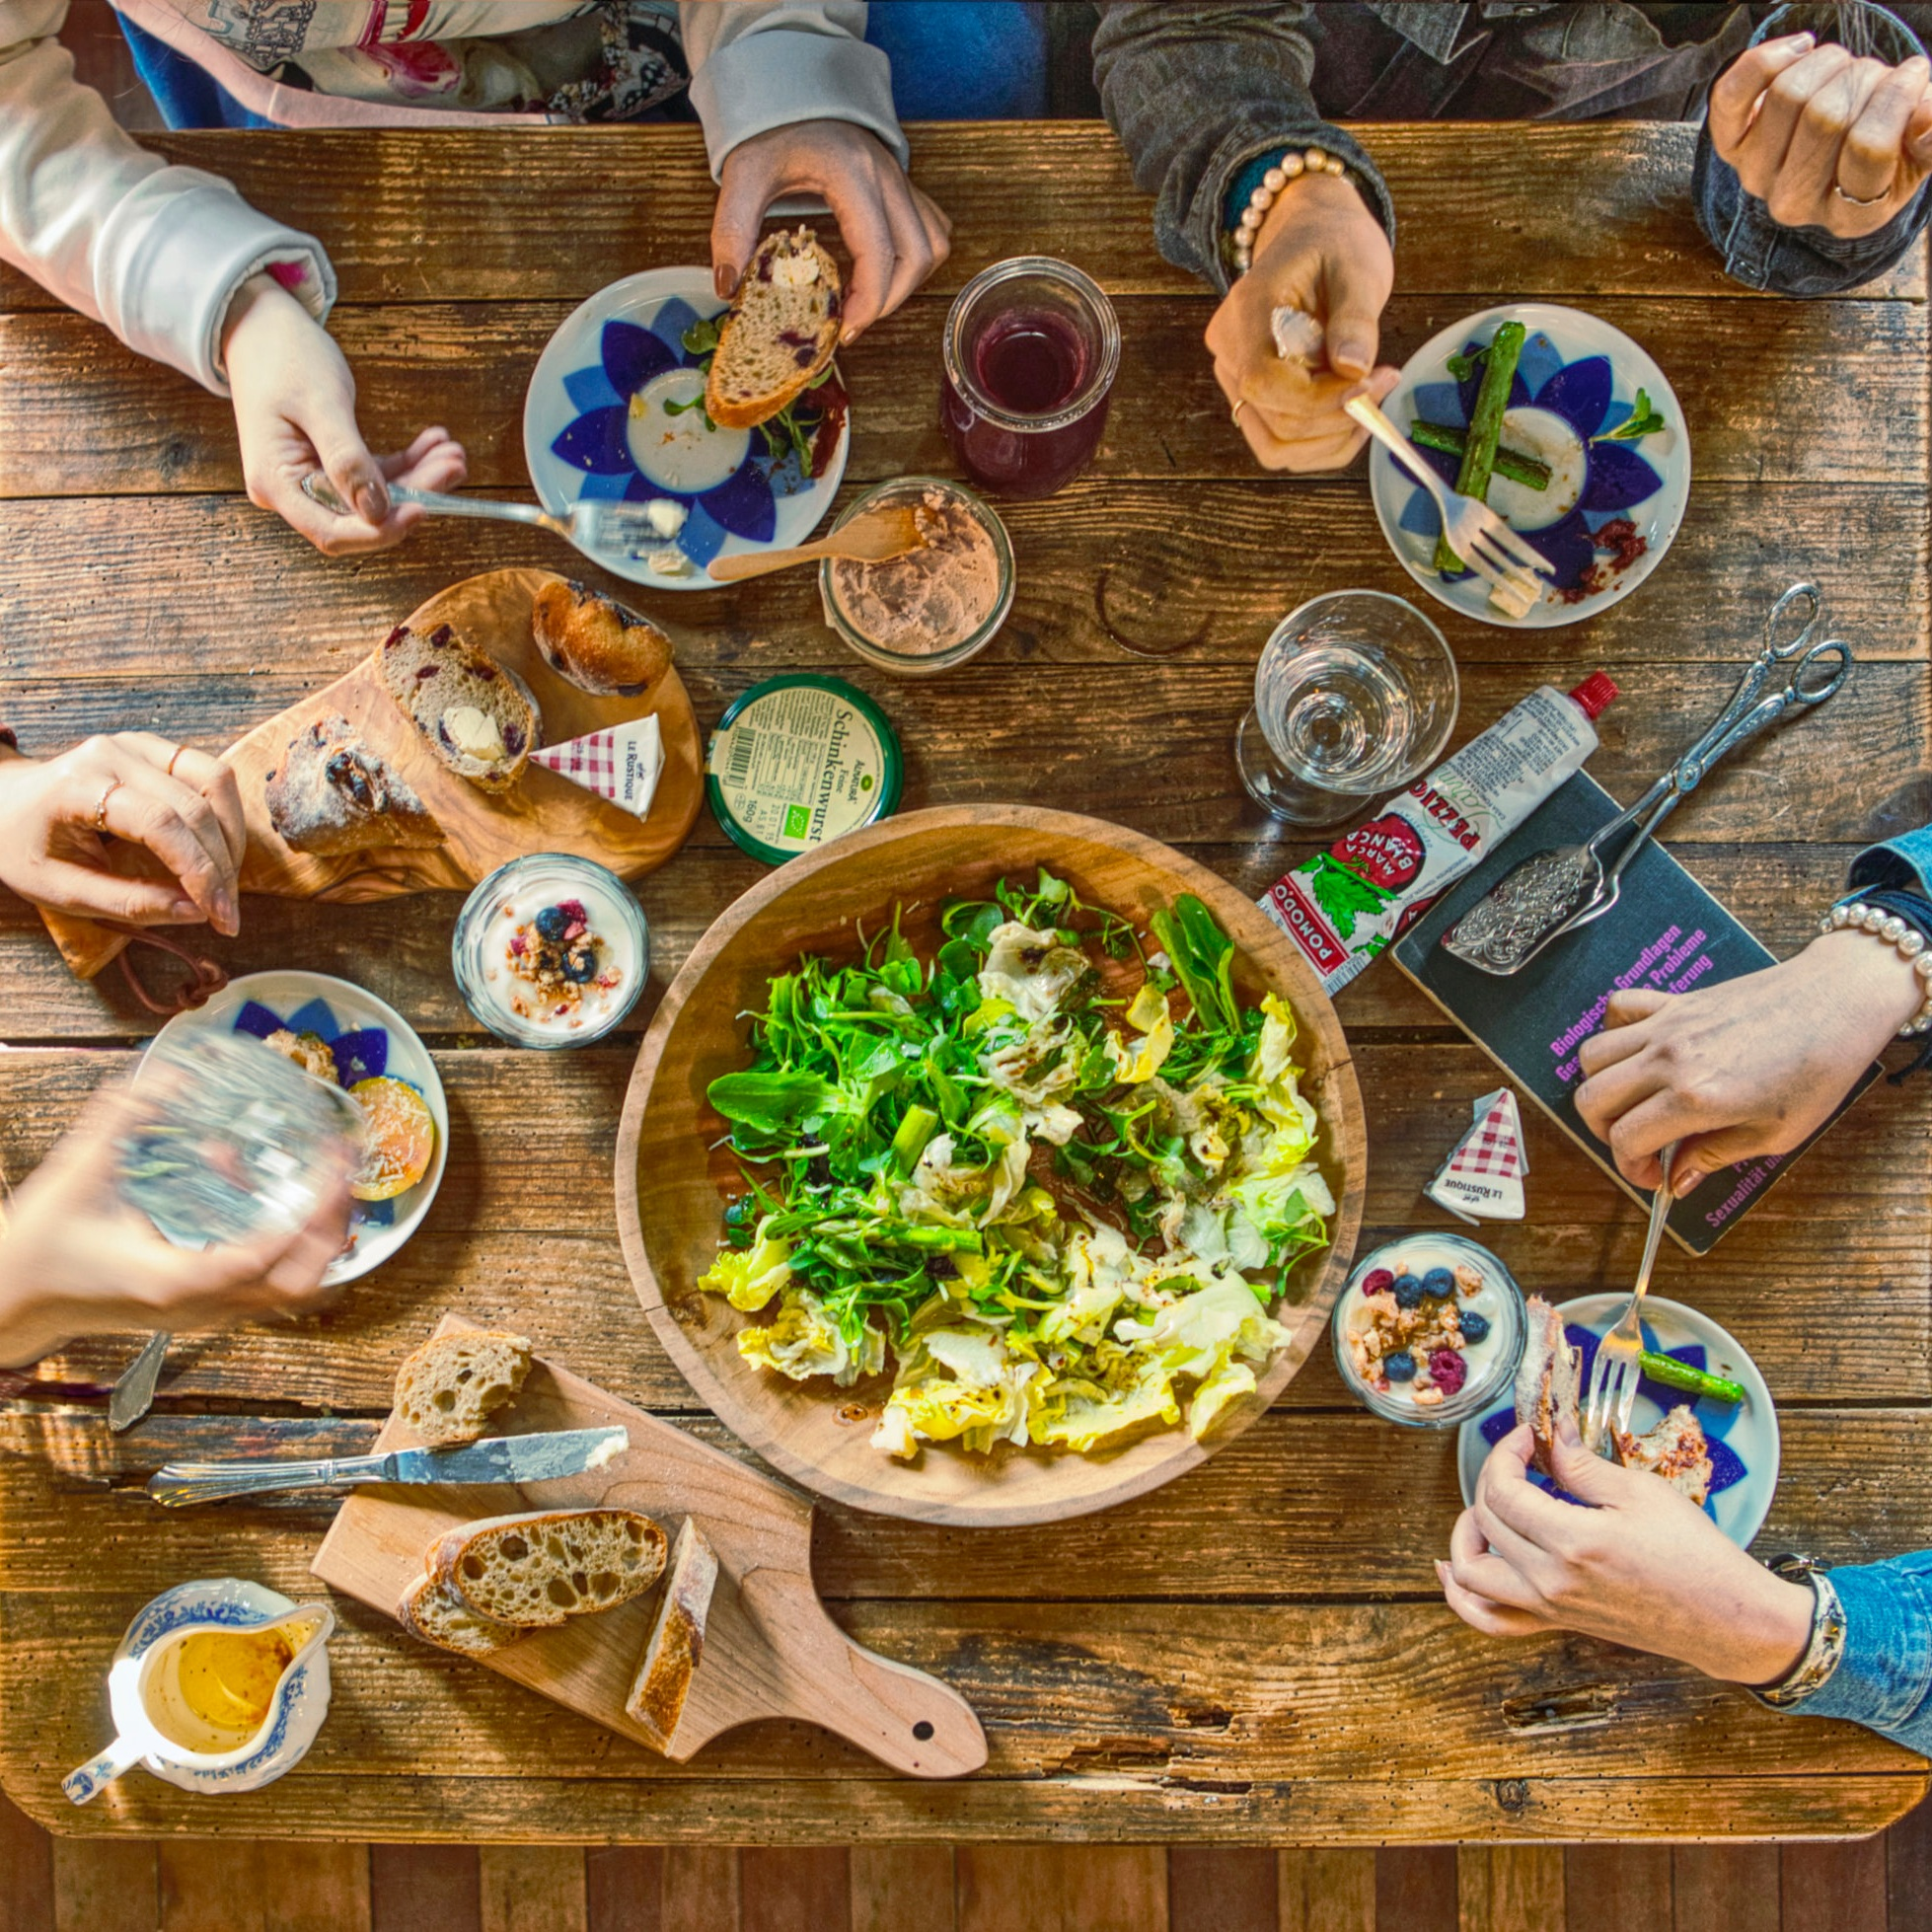 people gathered around food at a table